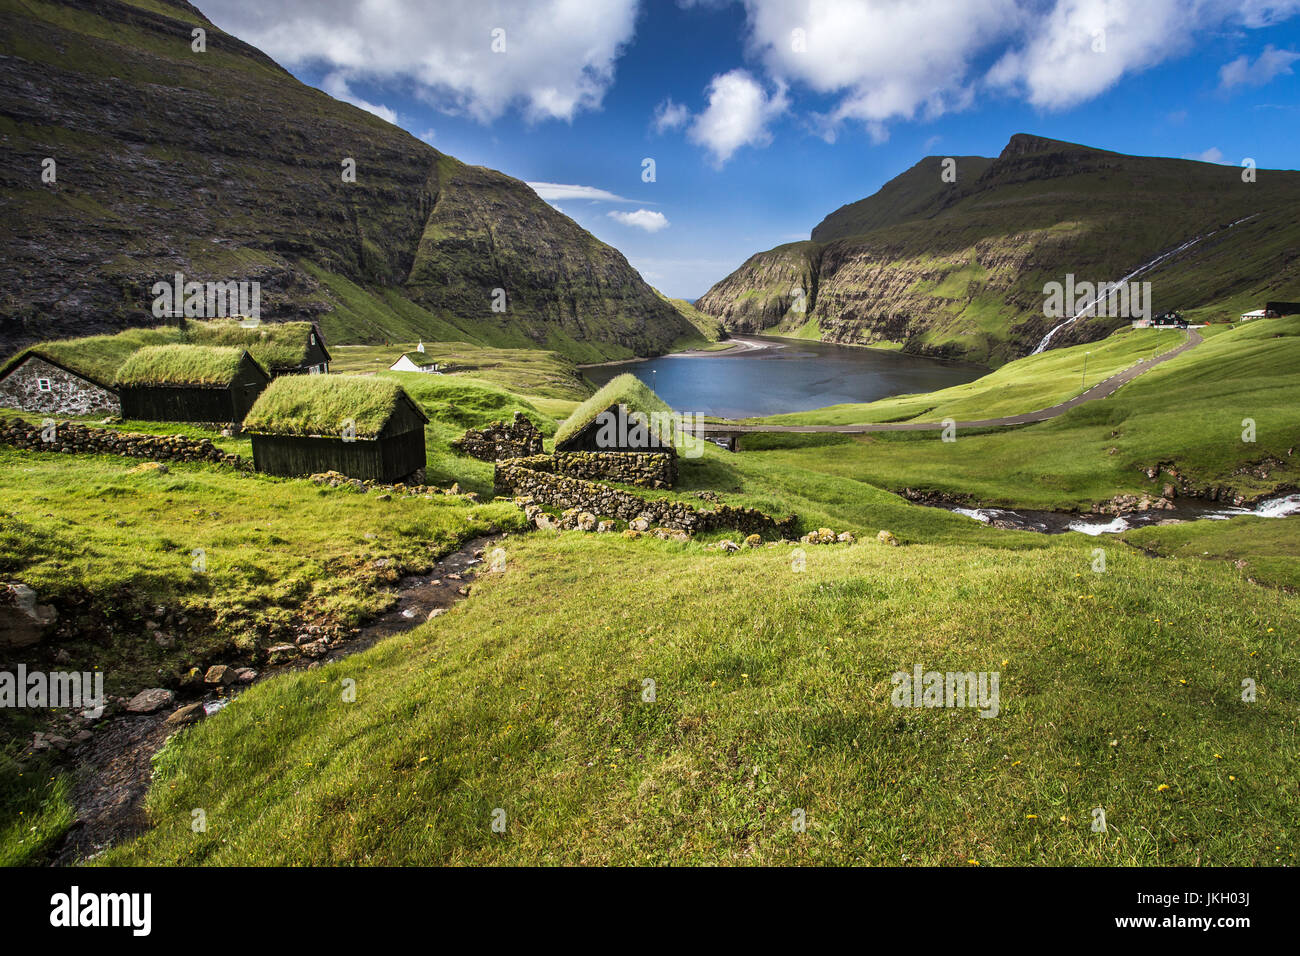 Village of Saksun located on the island of Streymoy, Faroe Islands, Denmark. Stock Photo